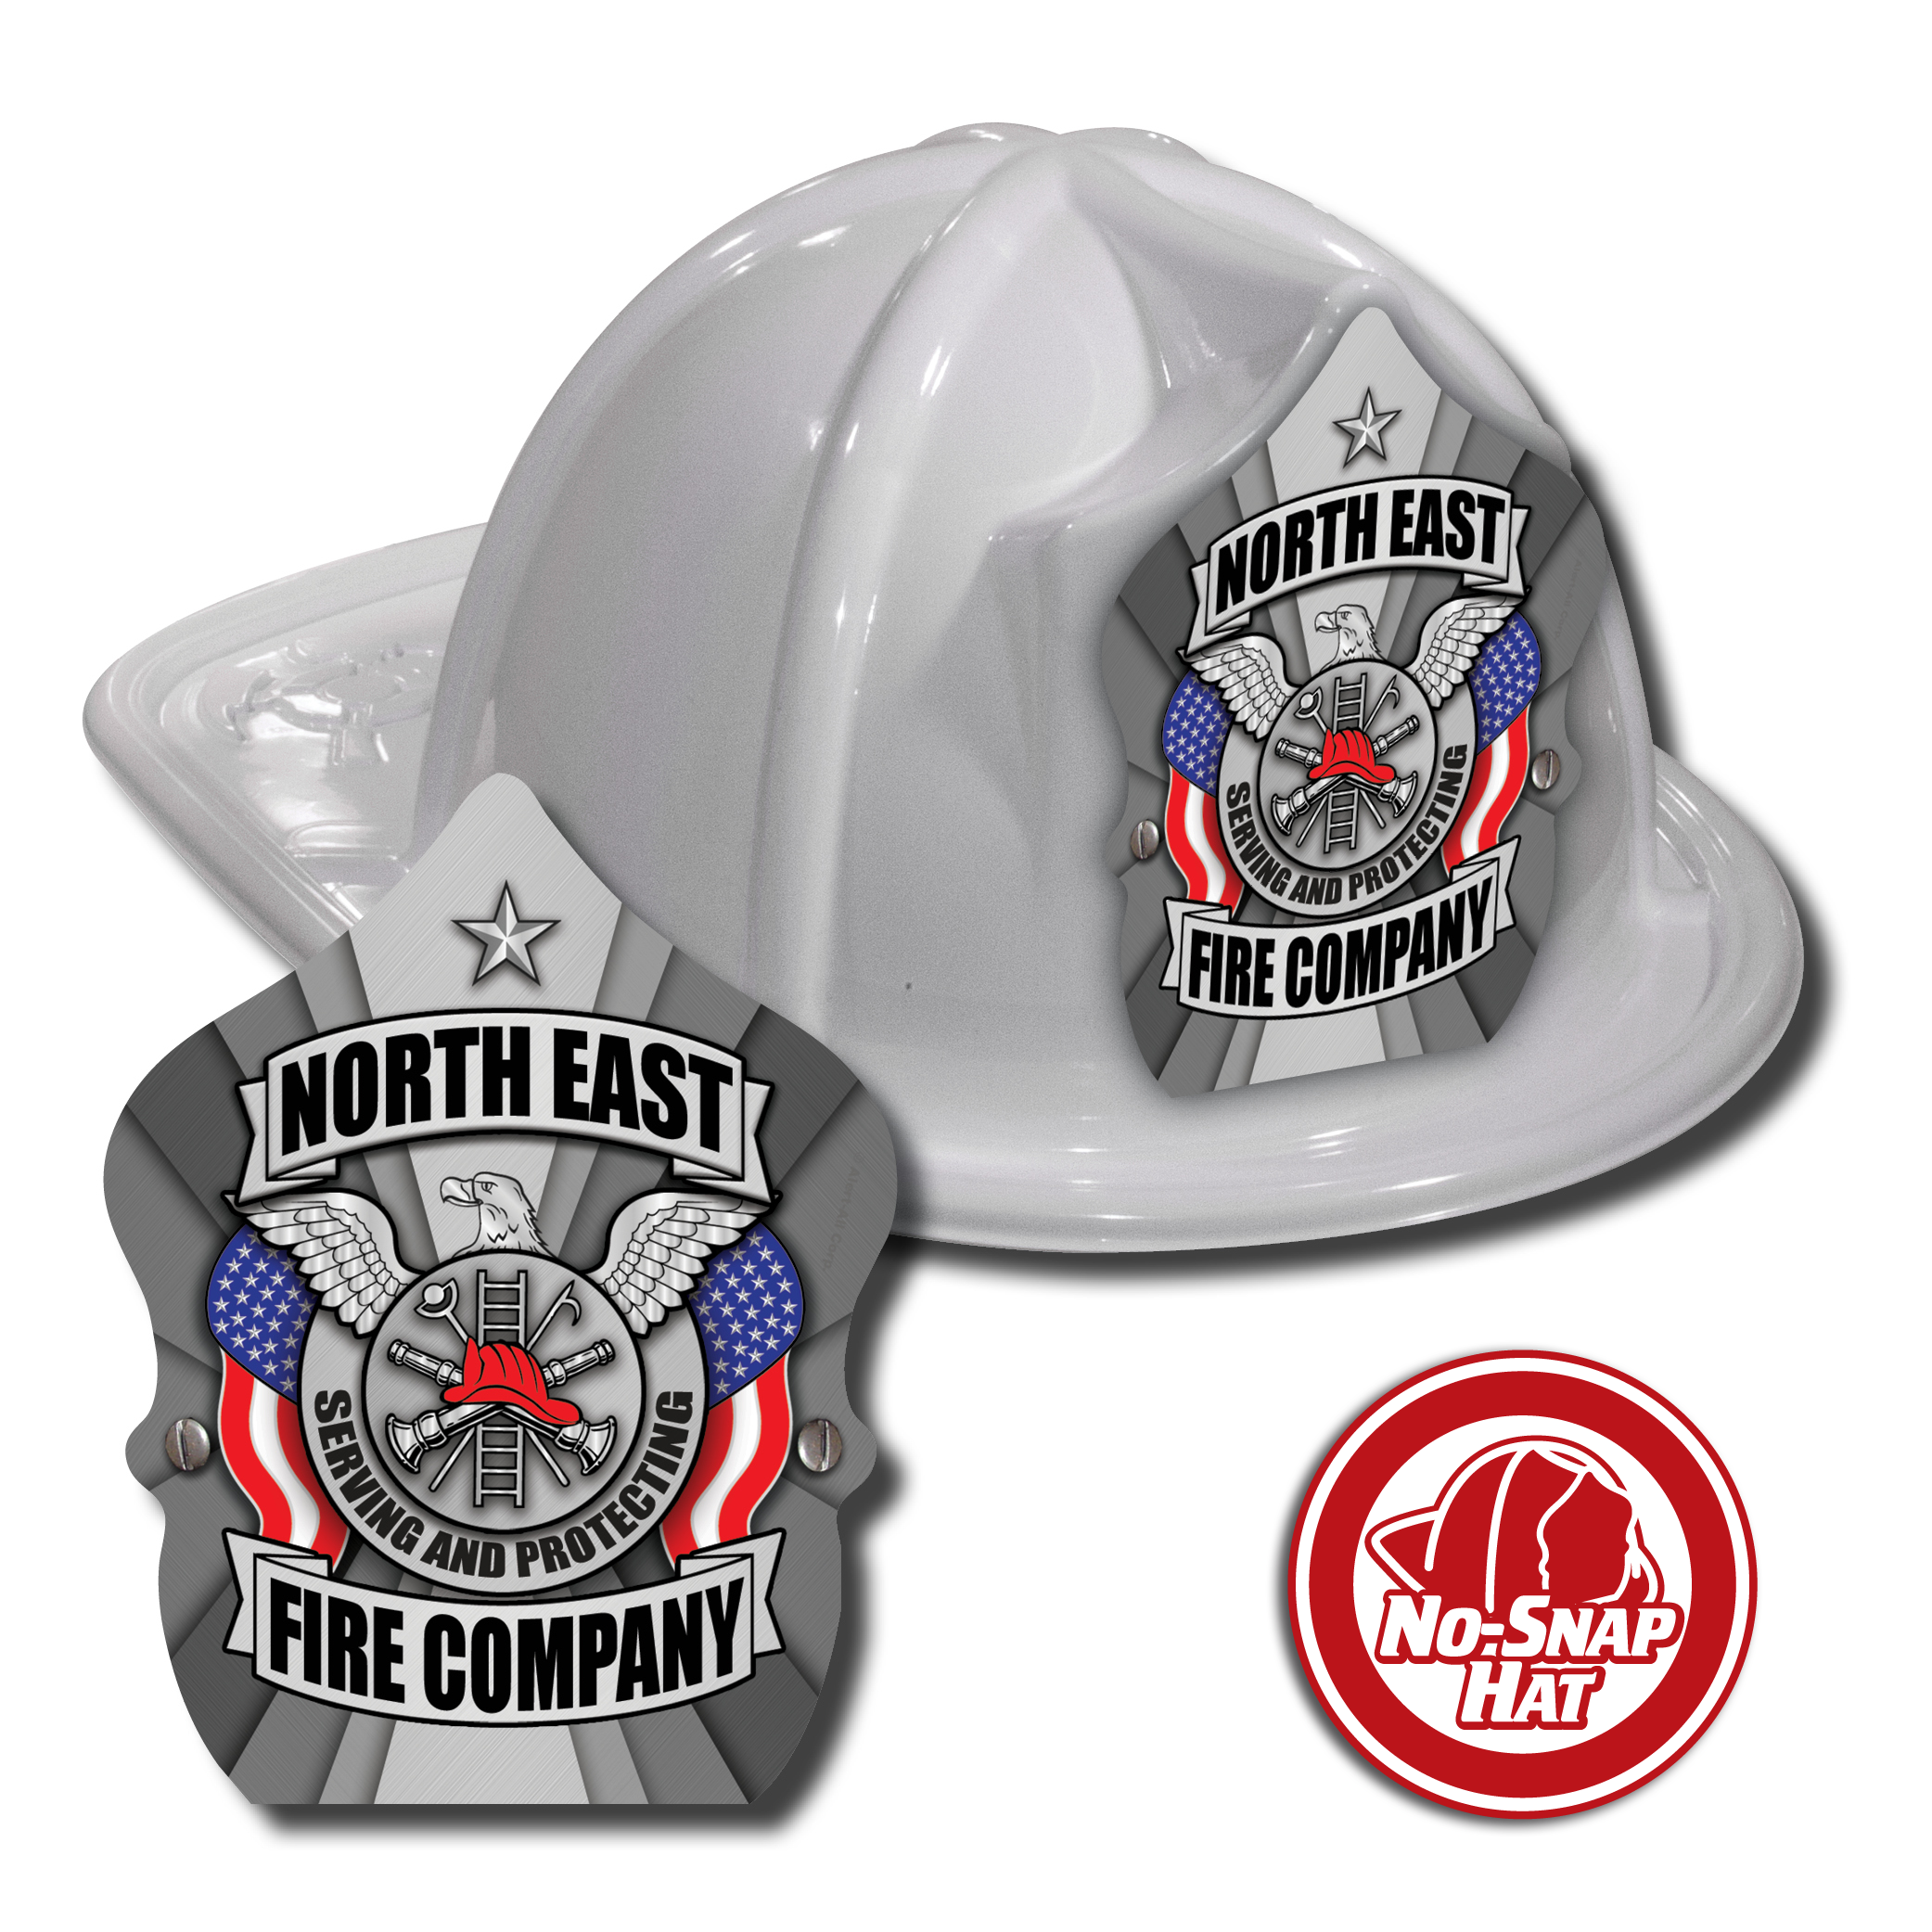 Custom White Fire Hat with Silver Eagle Shield